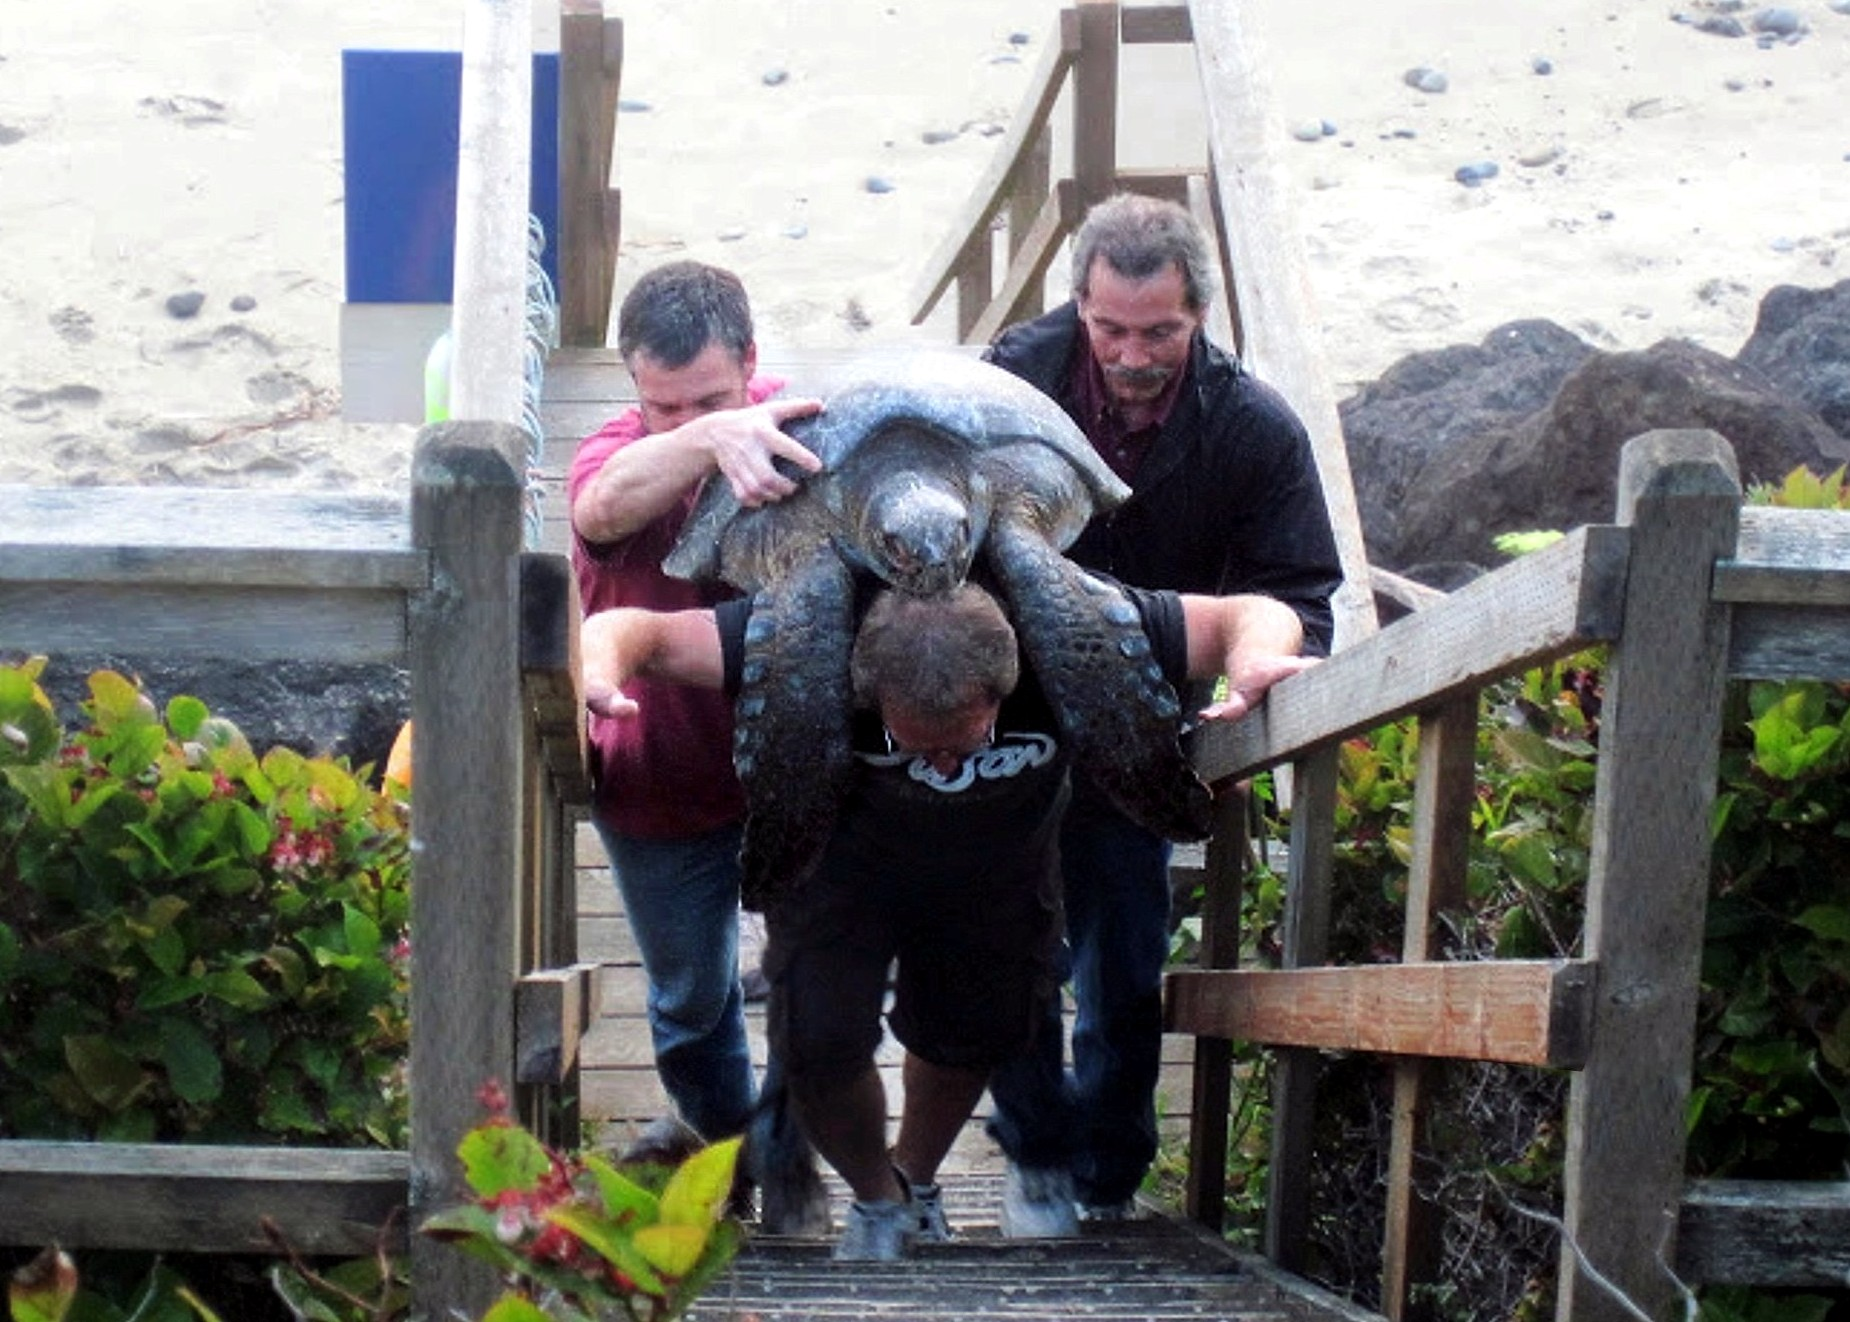 Jim Rice and Moolack Shores Staff Members Move Turtle-by Nadine Fuller